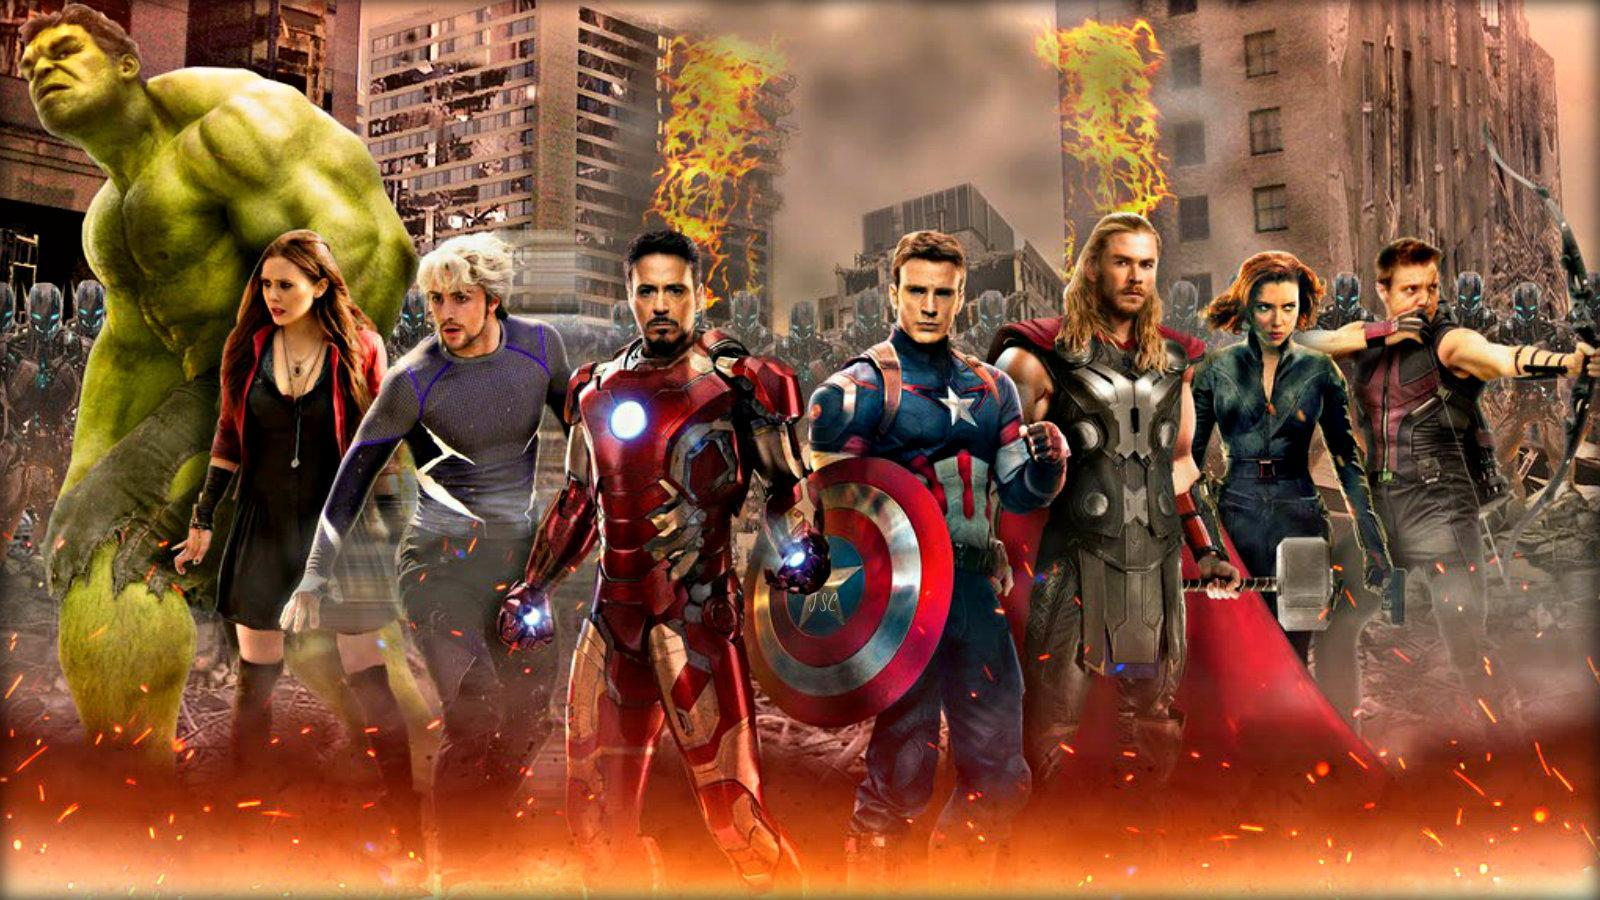 Which Avenger Descendant Are You?